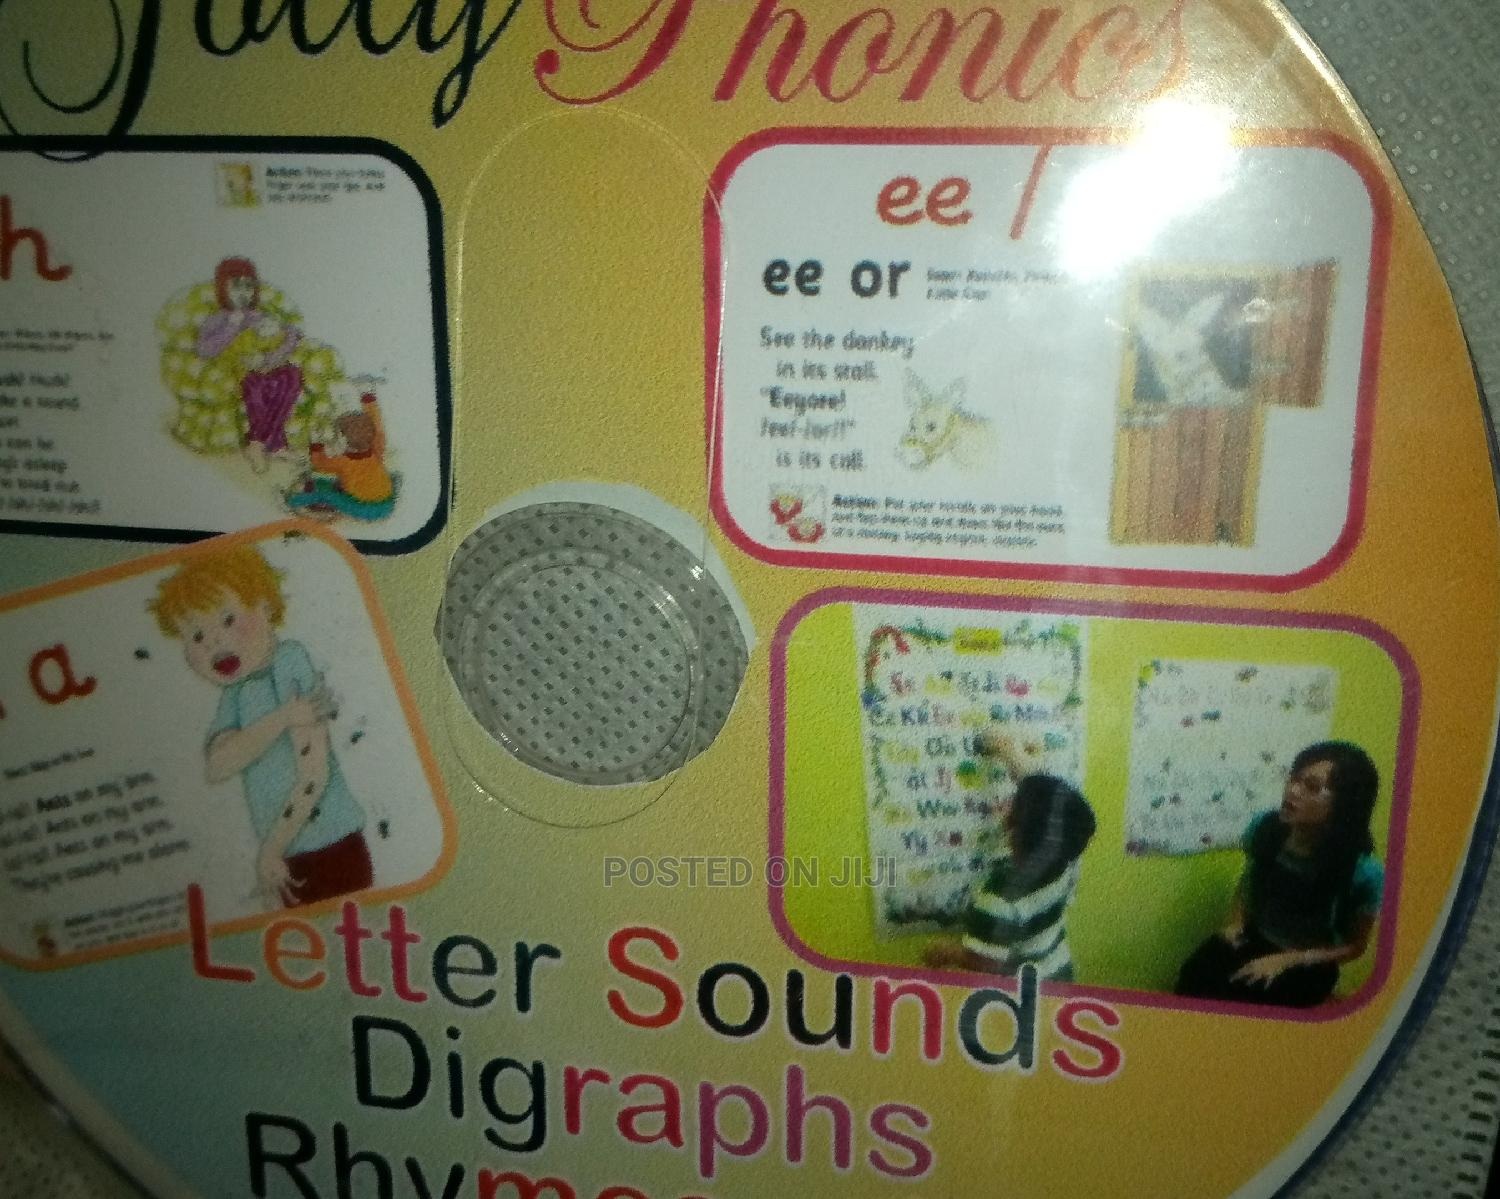 Jolly Phonics Dvds | CDs & DVDs for sale in Agege, Lagos State, Nigeria